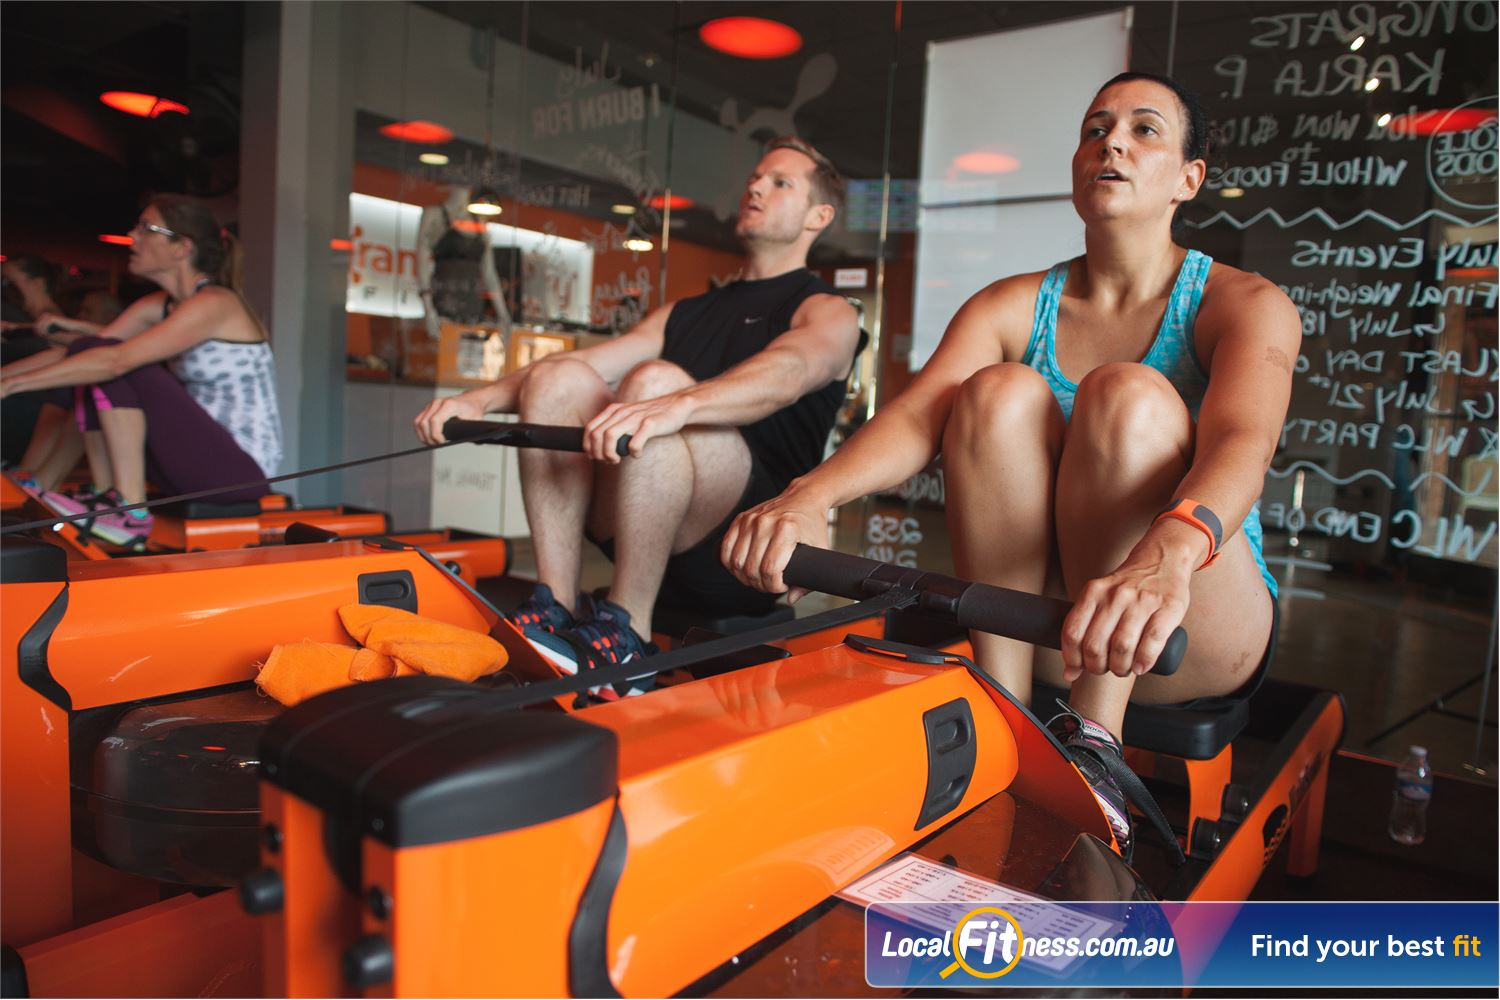 Orangetheory Fitness South Yarra Our South Yarra gym classes use state of the art rowers.